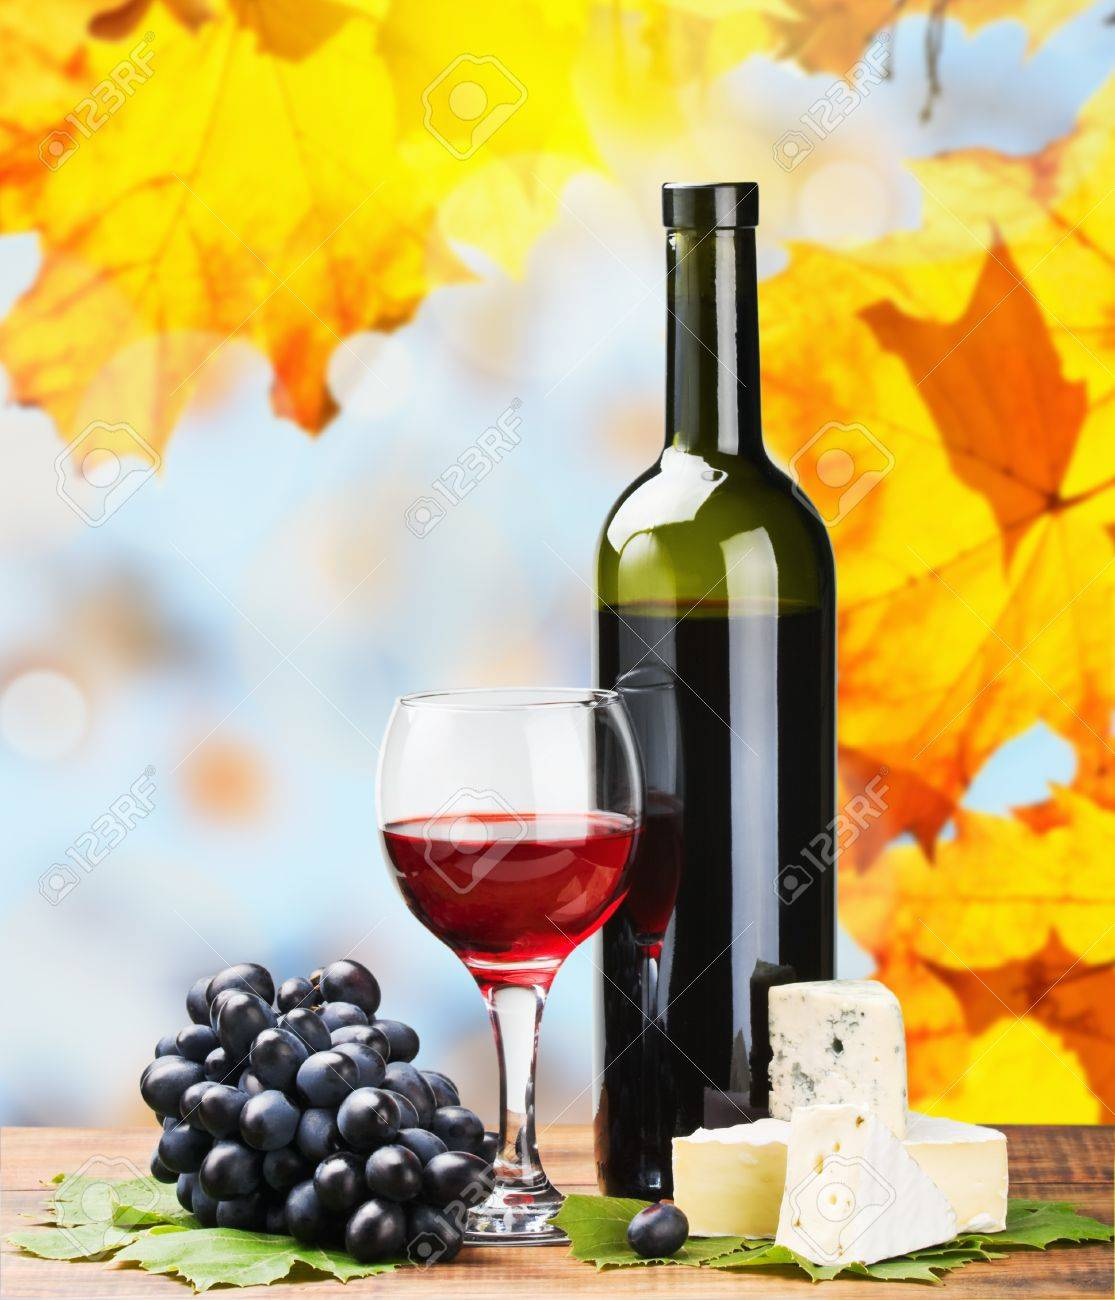 bottle, glass of red wine and assorted cheeses on a background of autumn leaves Stock Photo - 15281519